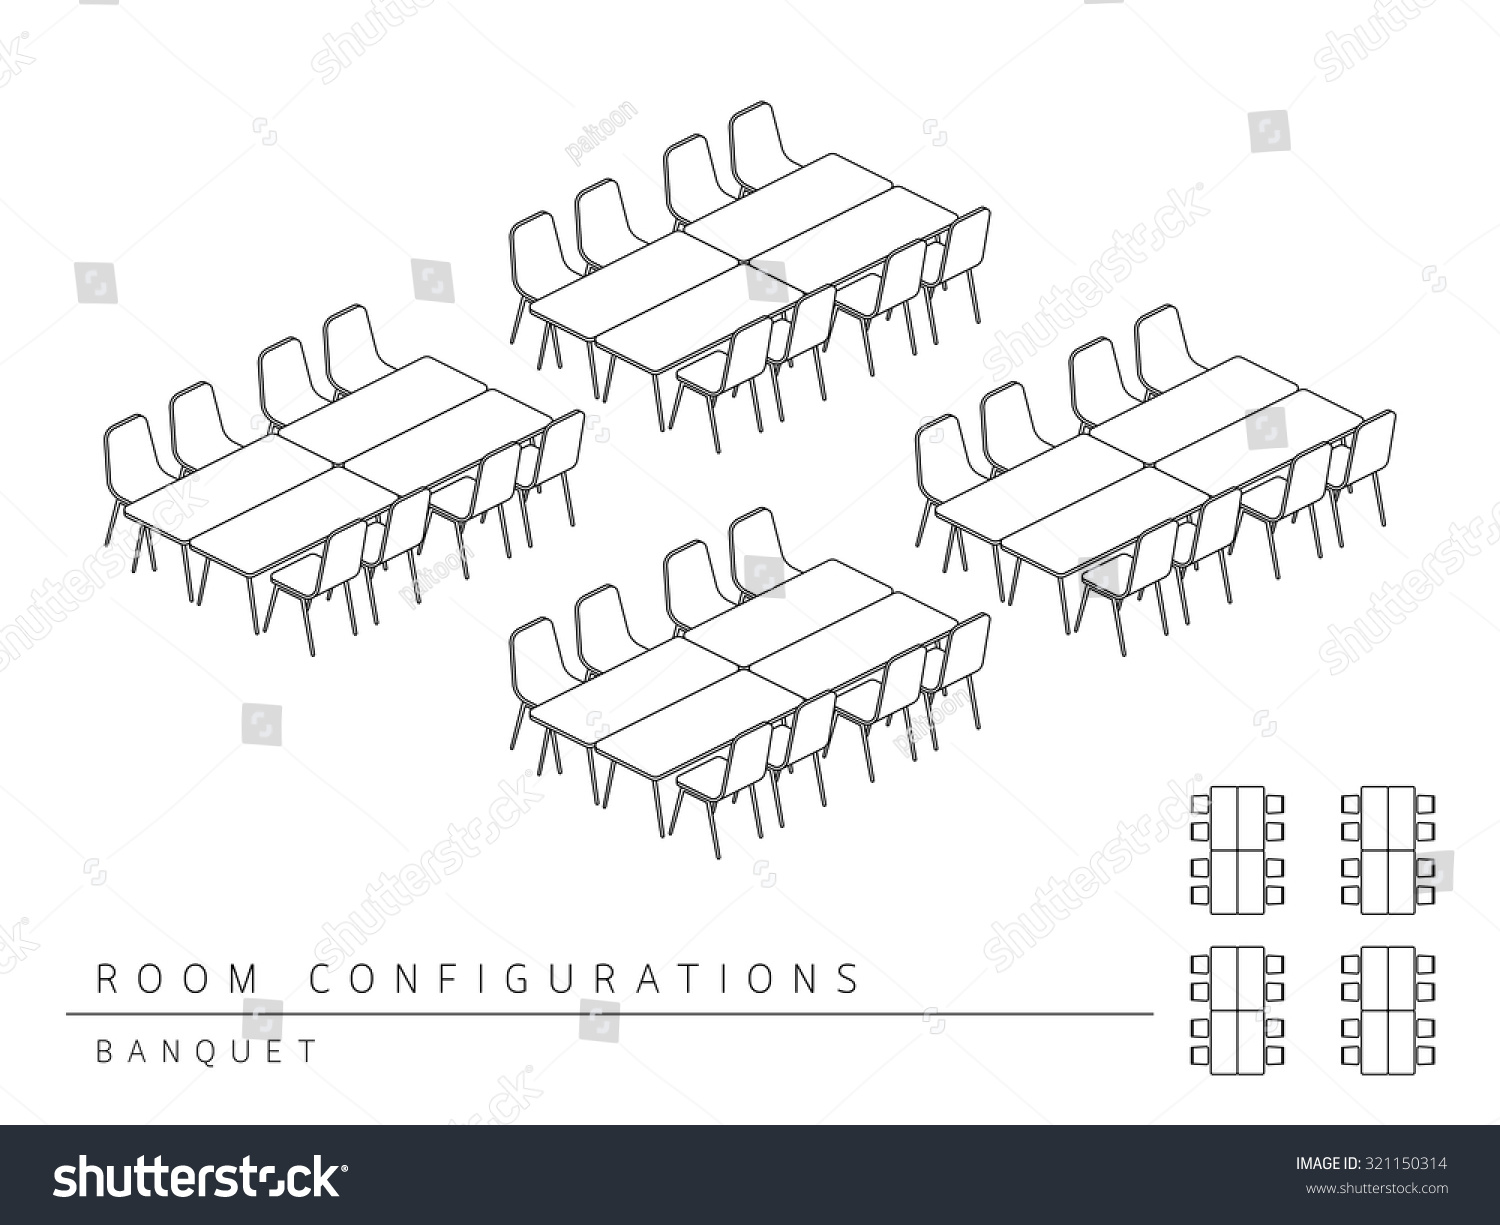 hight resolution of meeting room setup layout configuration banquet style perspective 3d with top view illustration outline black